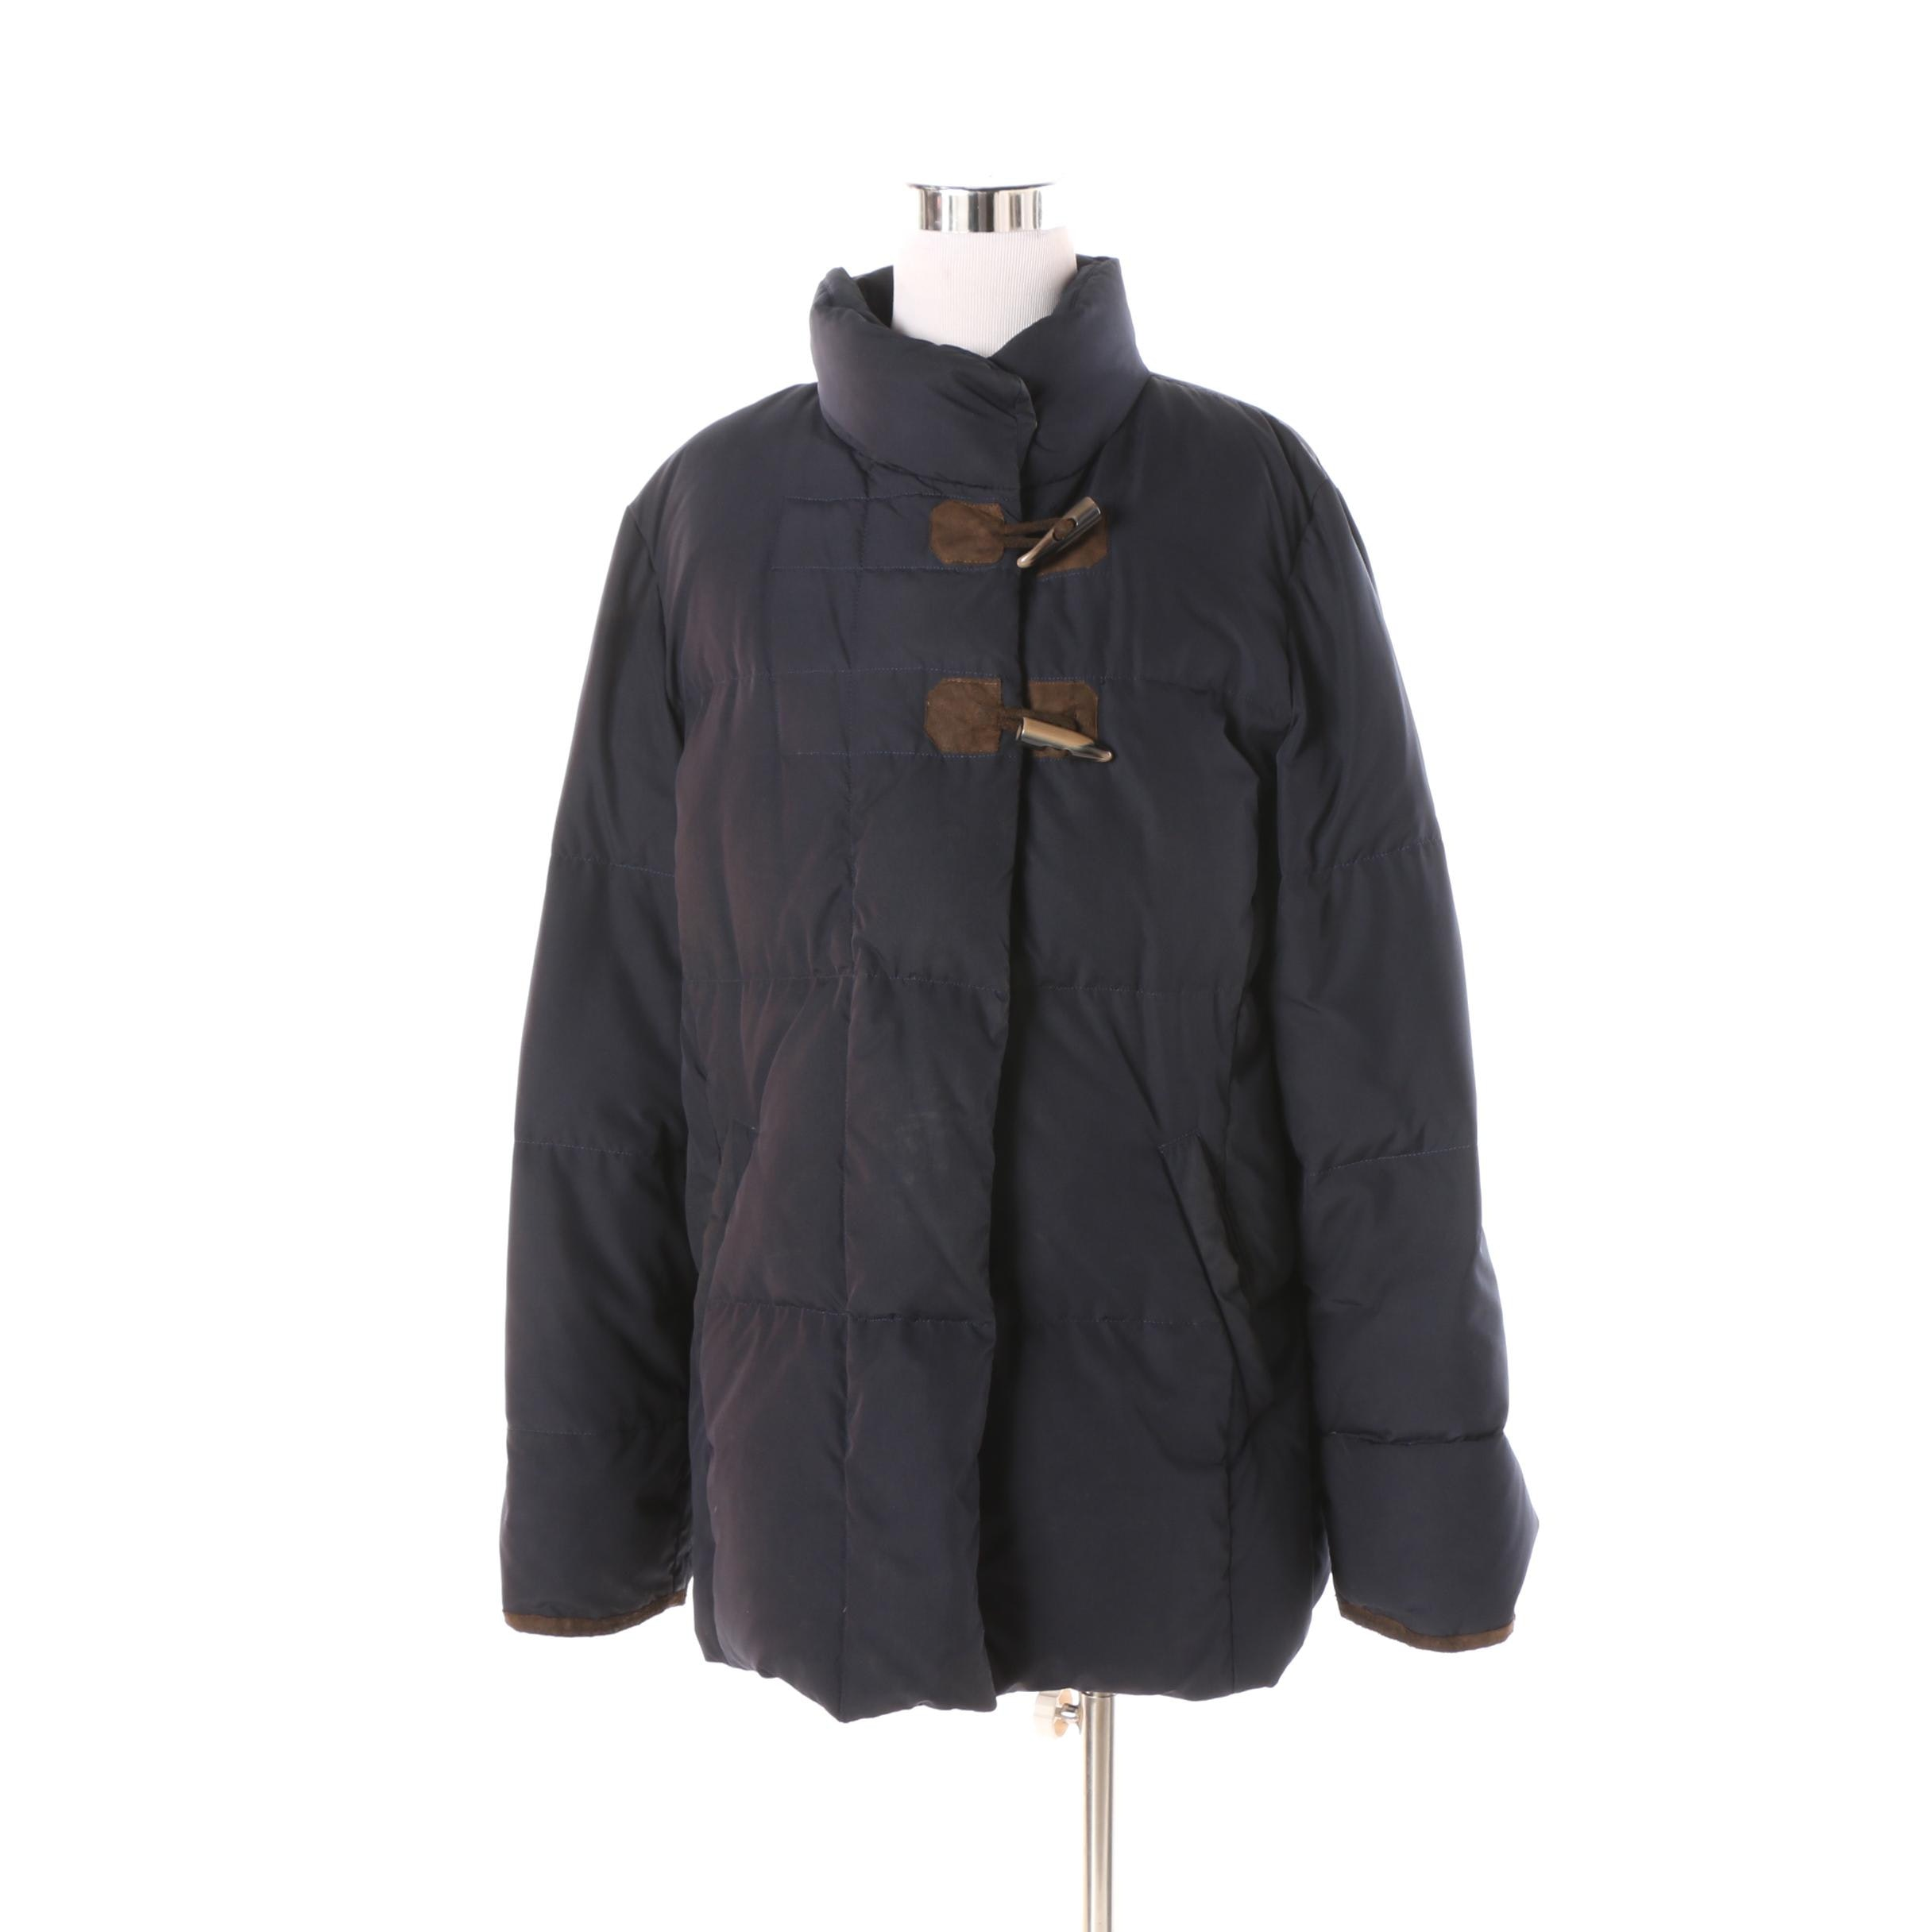 Women's Schneiders of Salzburg Navy Blue Puffer Jacket